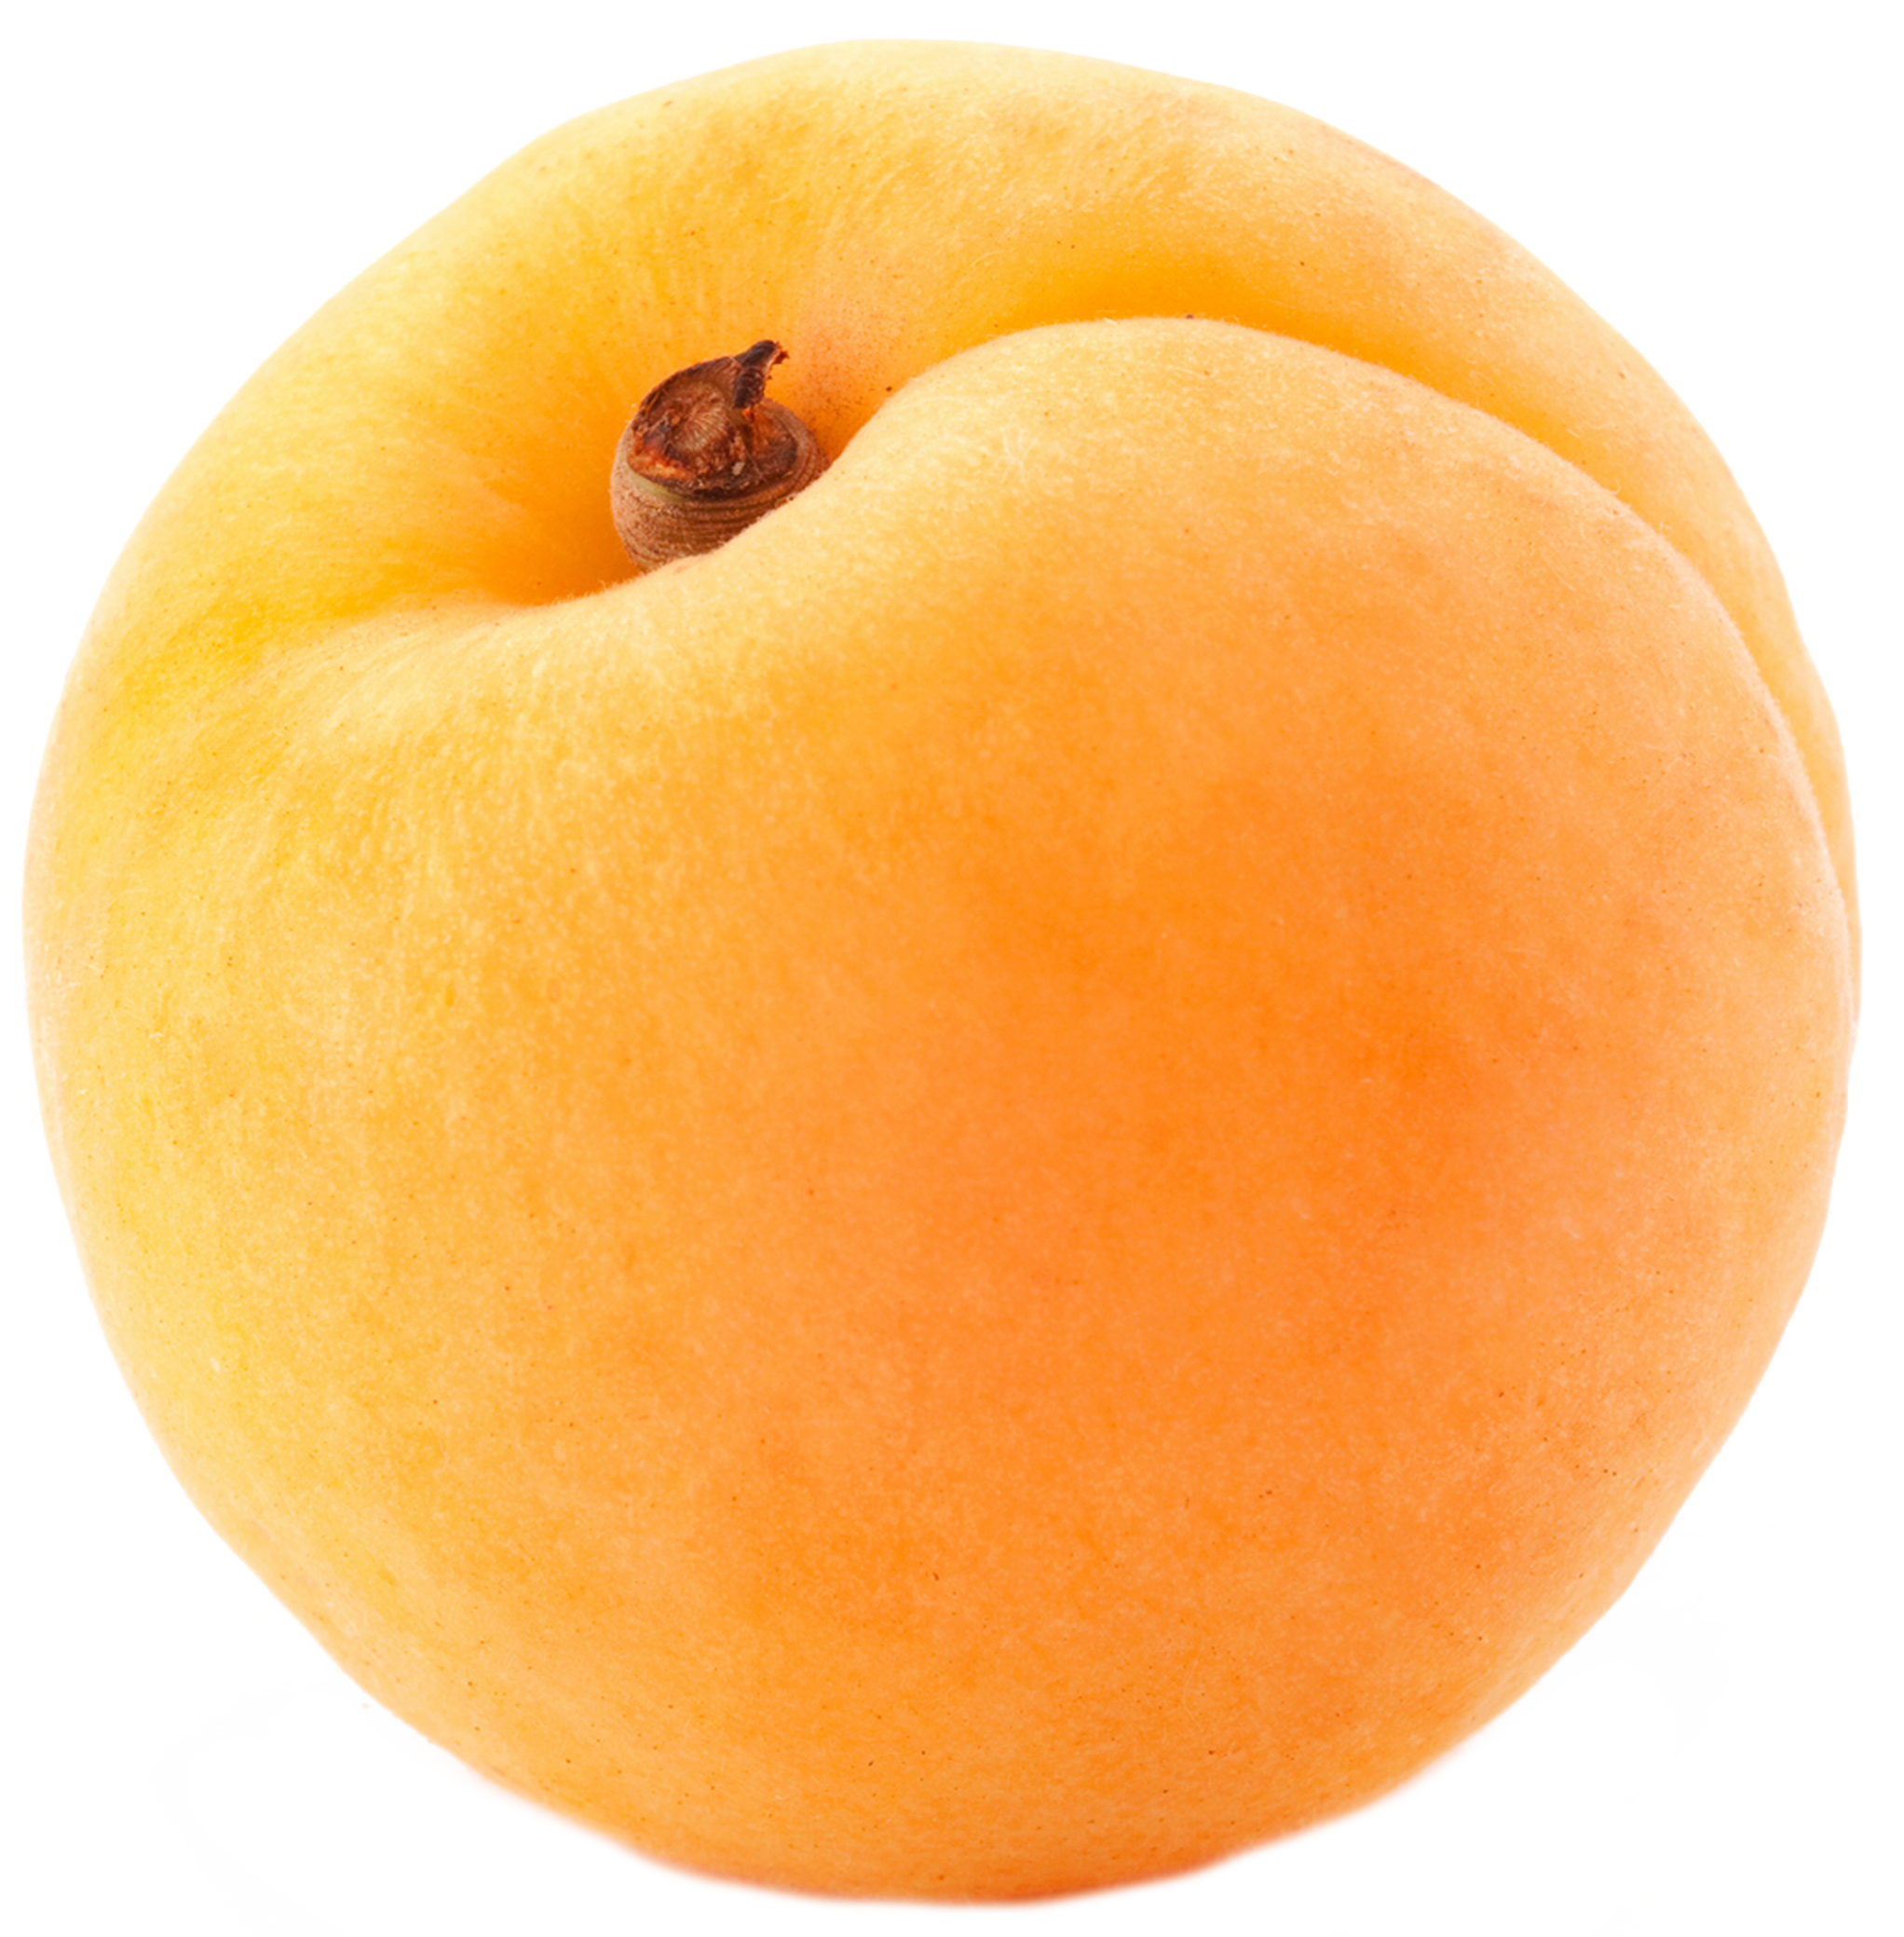 Peach clipart single fruit Apricot images free png download